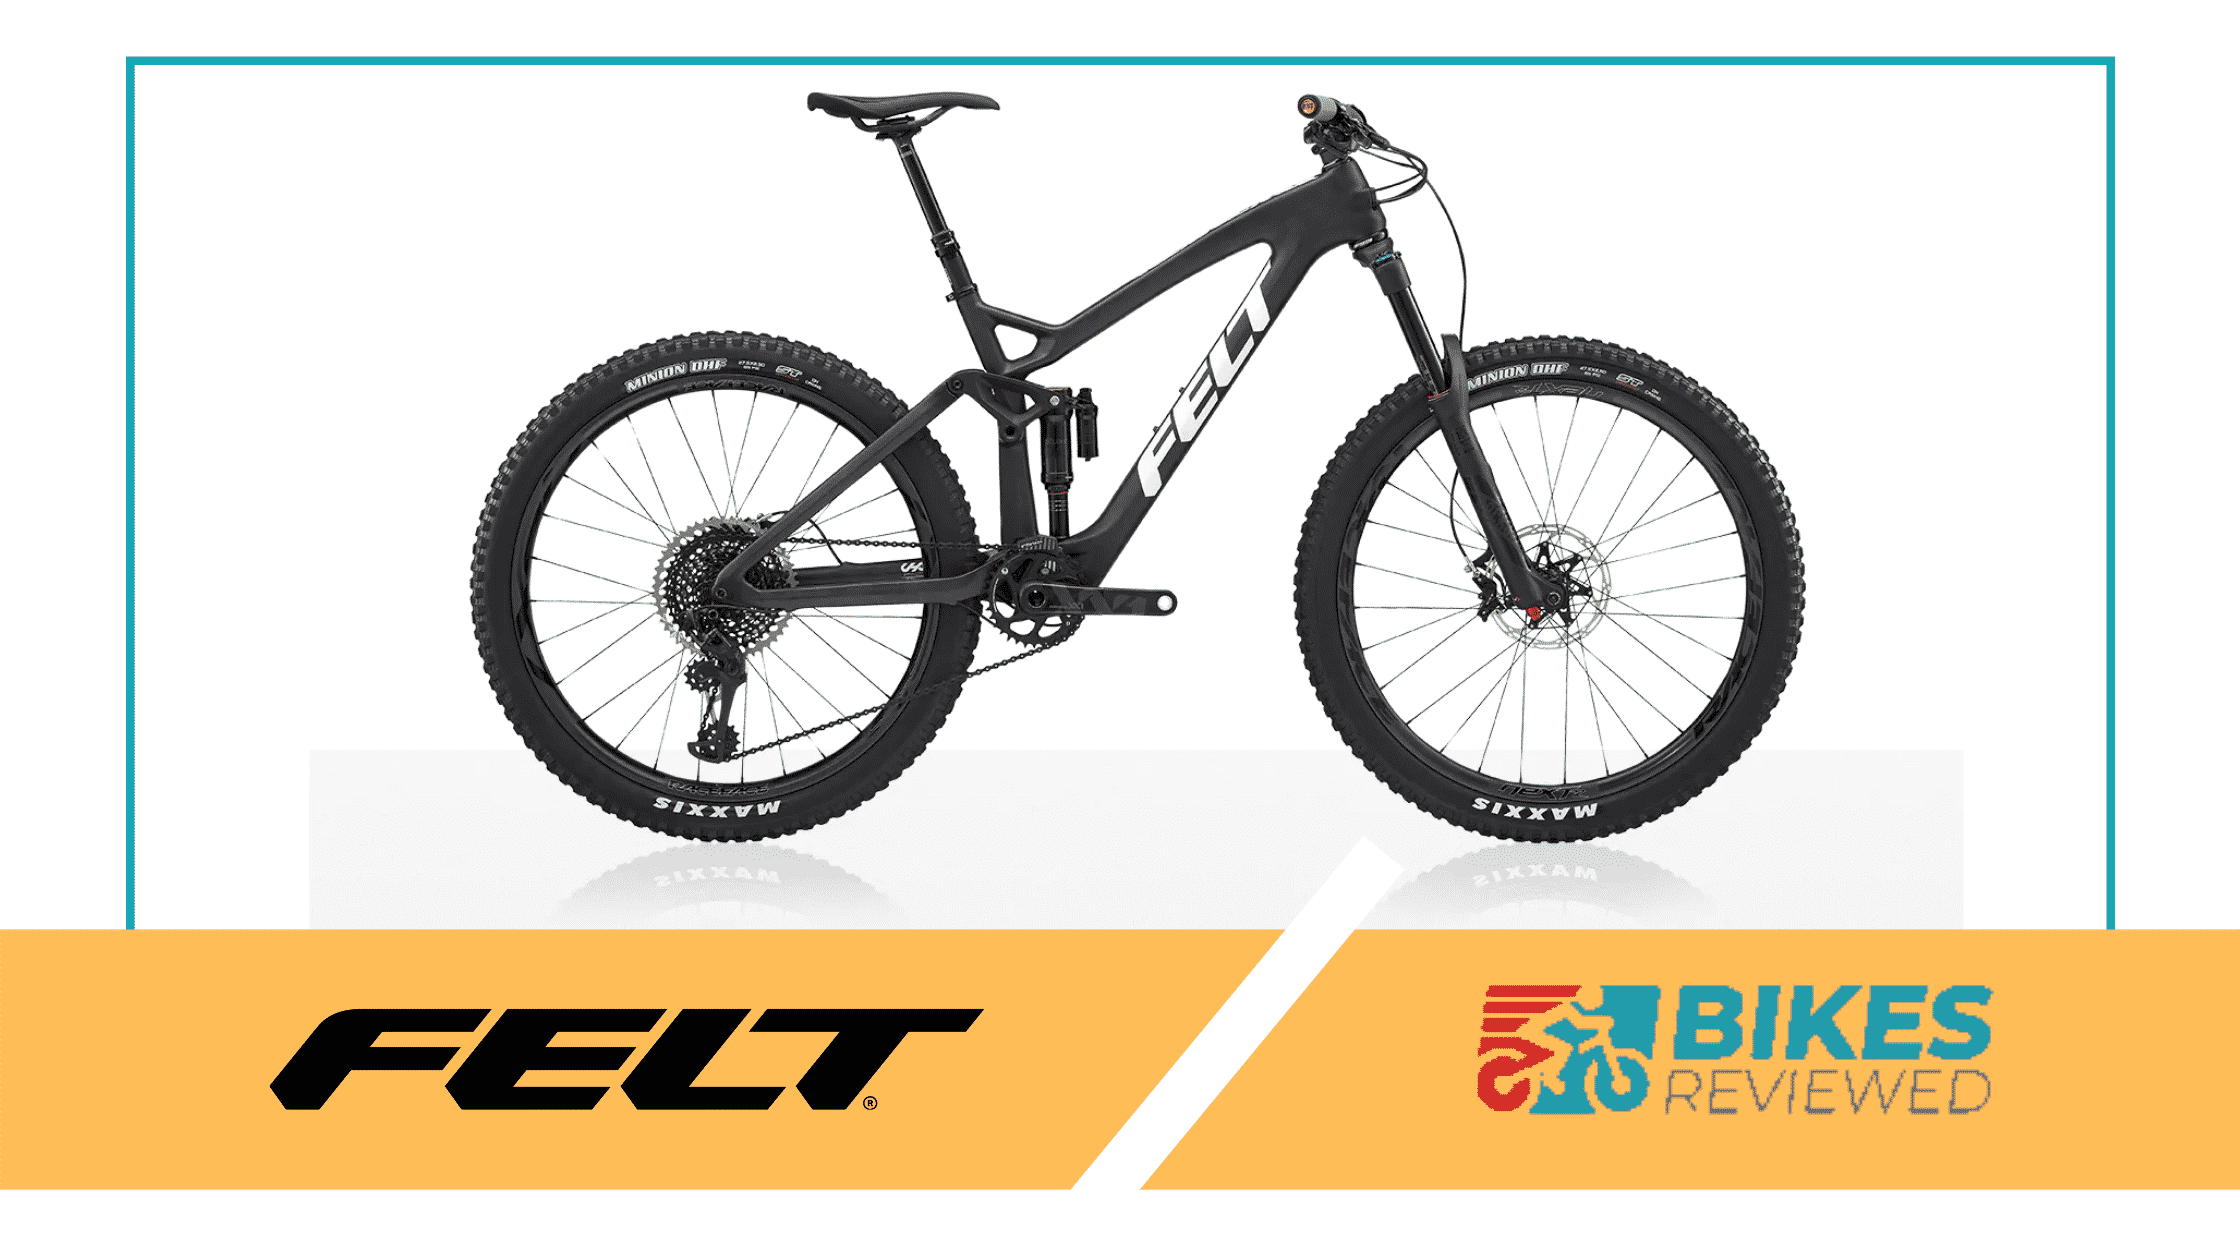 Felt bikes - Popular Bicycle brands in the US